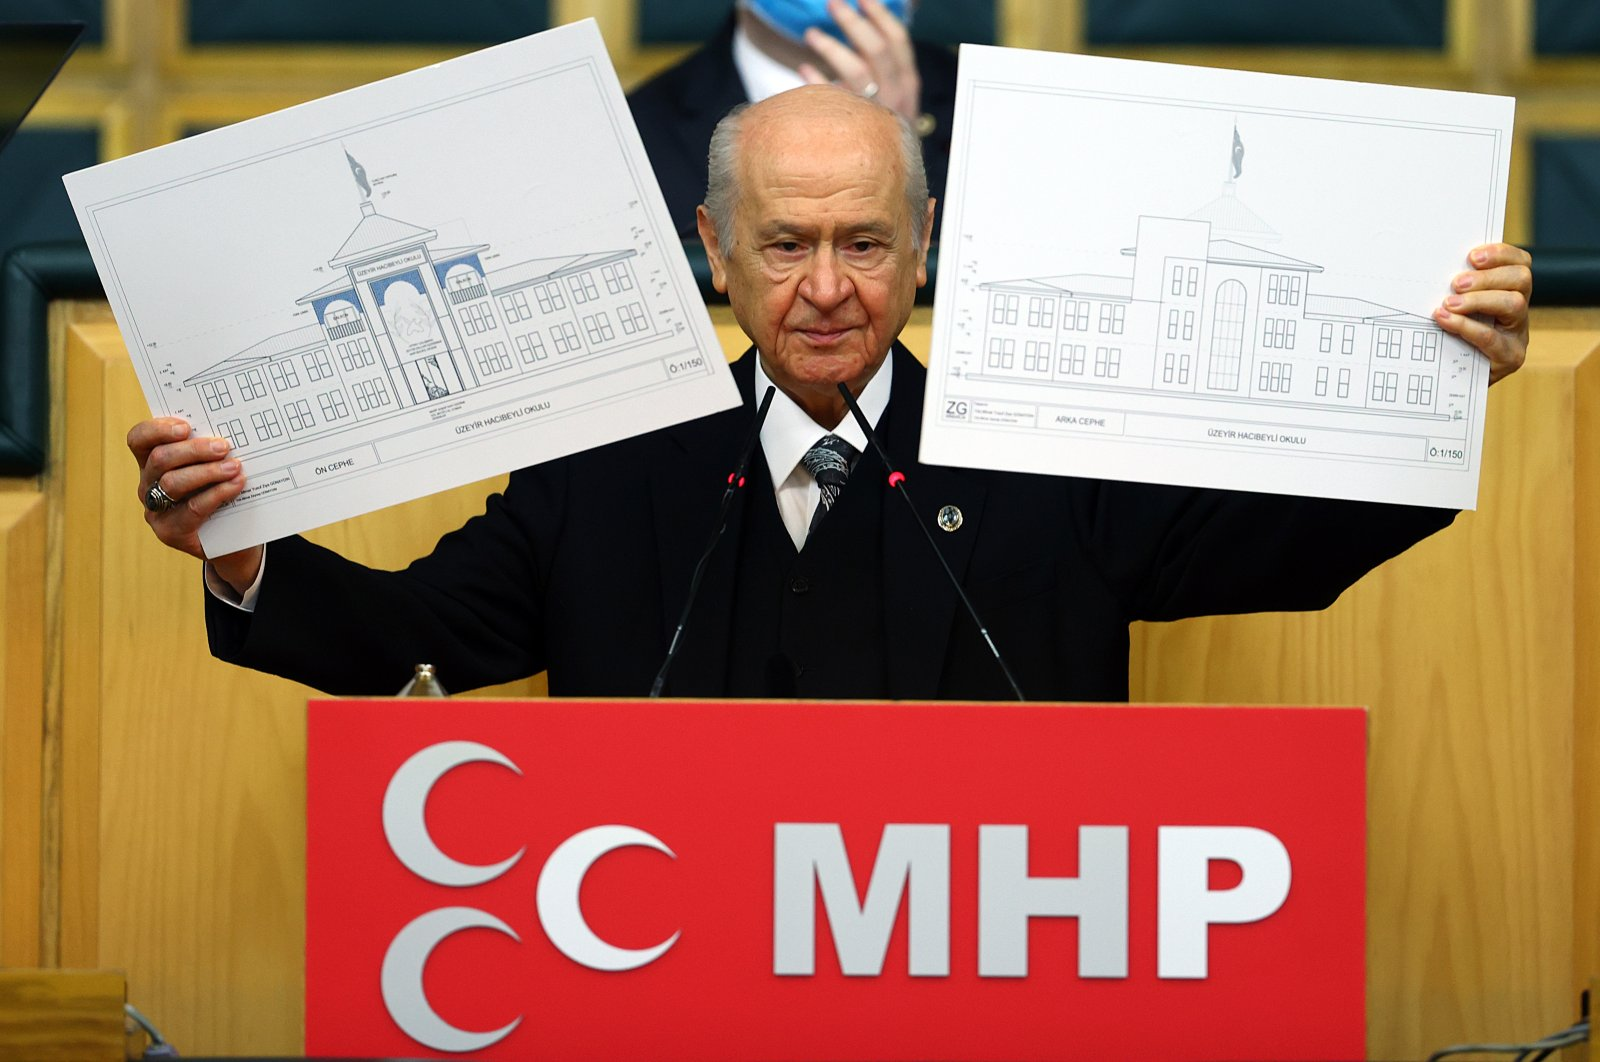 Nationalist Movement Party (MHP) Chairperson Devlet Bahçeli during his party's parliamentary group meeting in Ankara shows the plans of the school to be built in Azerbaijan's key city Shusha, Jan. 26, 2021. (AA Photo)